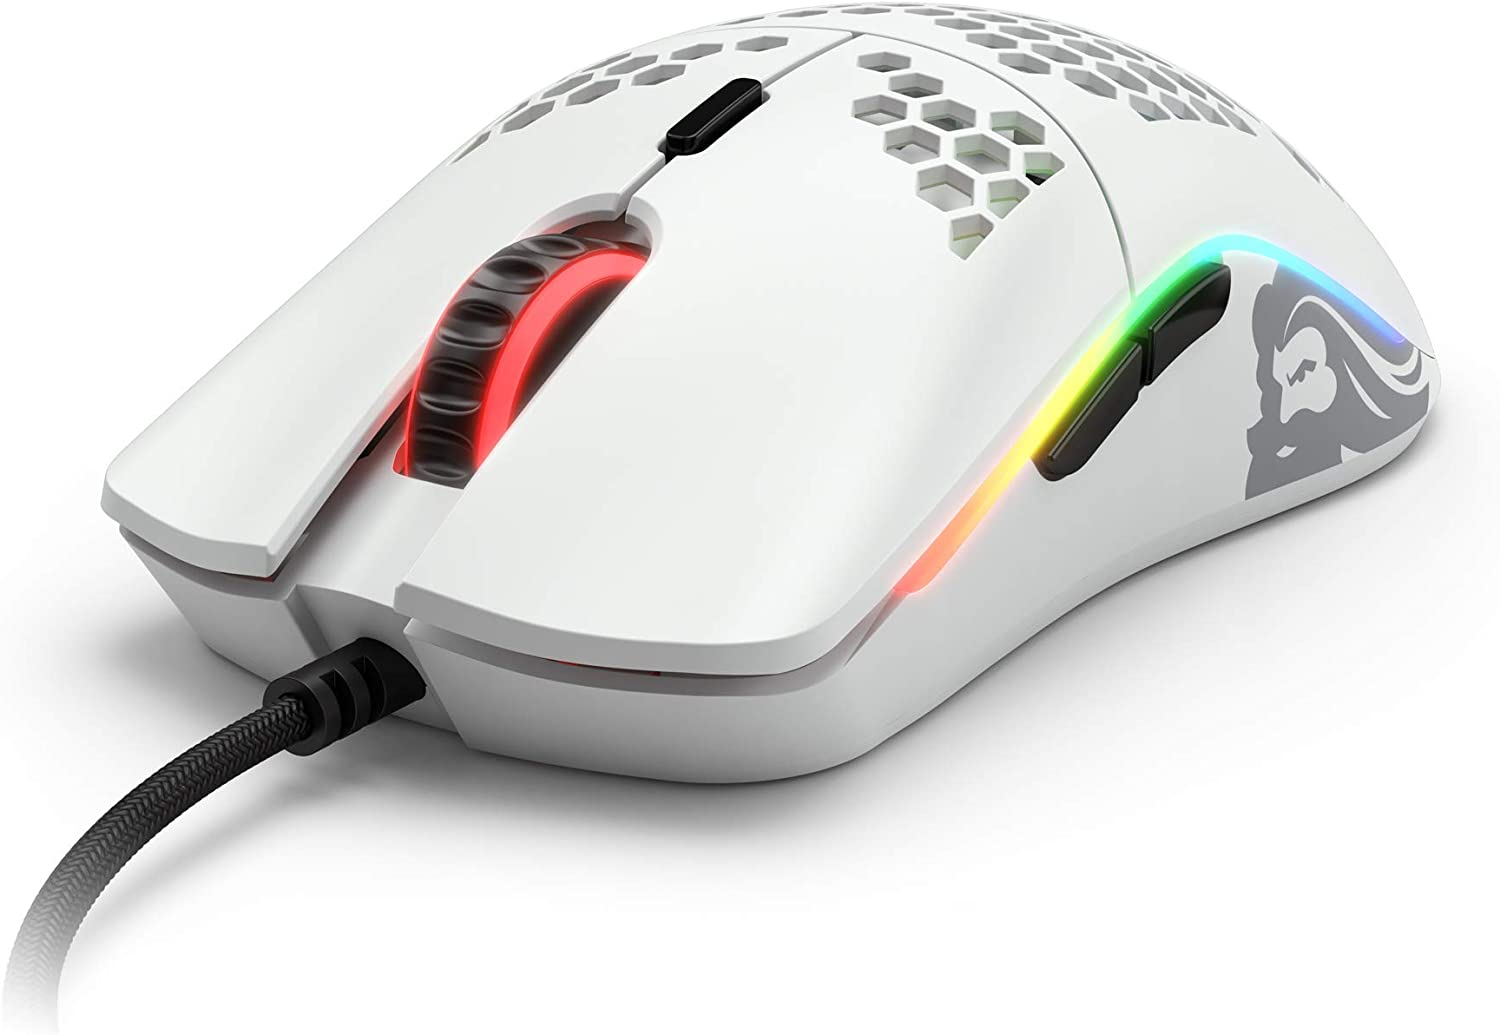 finalmouse for gaming